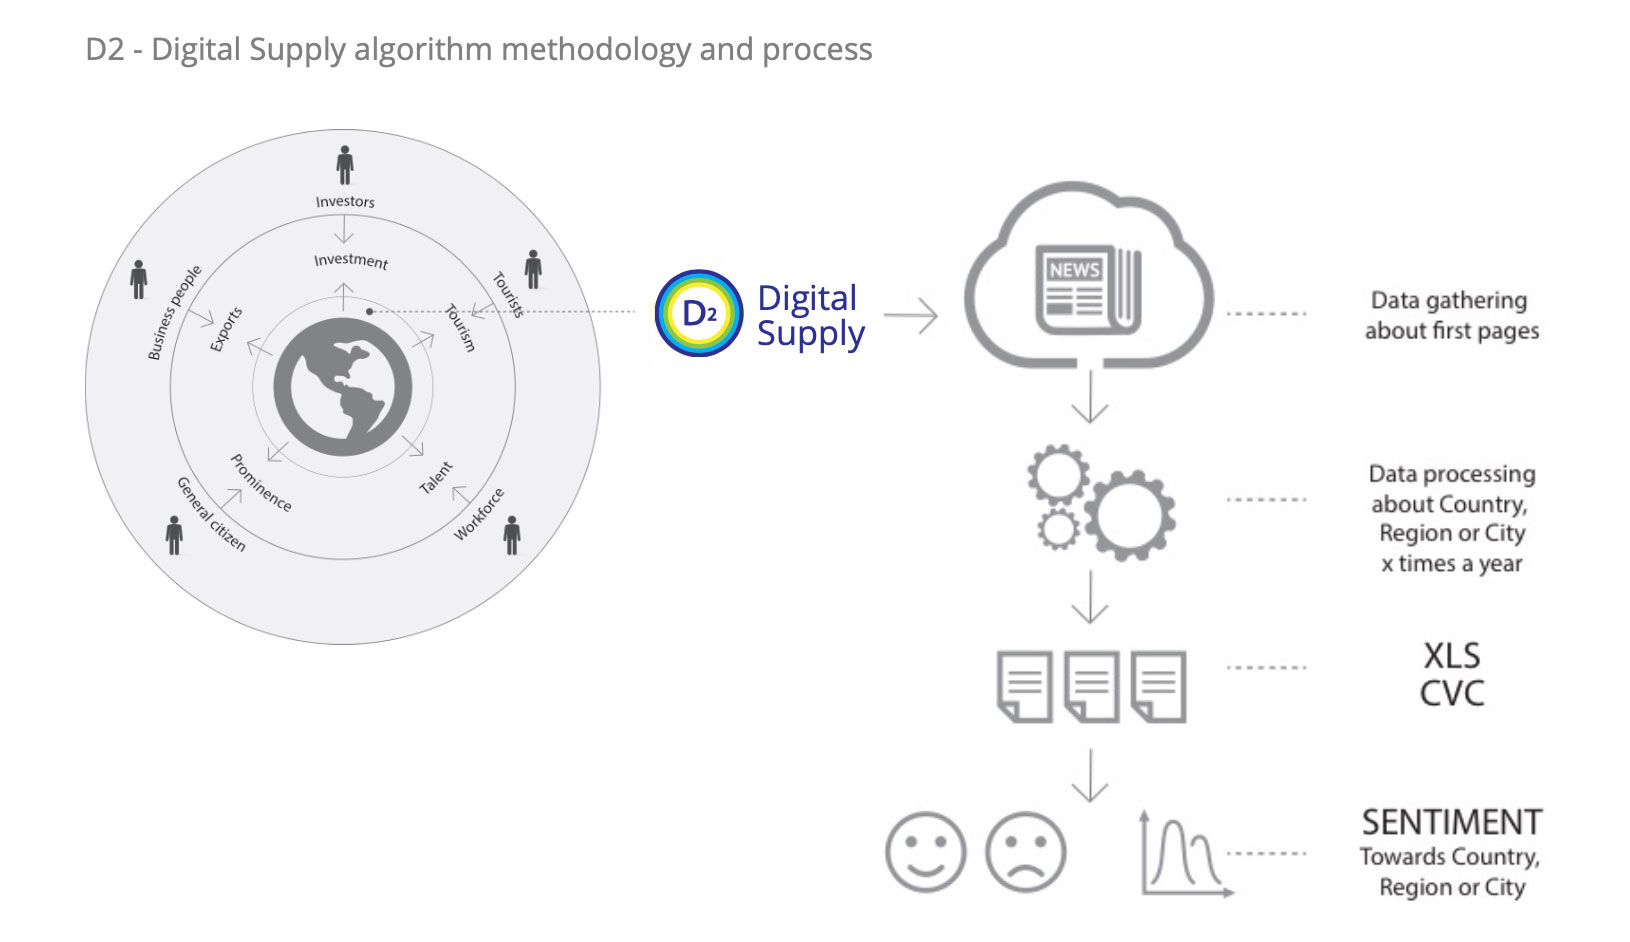 D2 - Digital Supply software algorithm, methodology and process visualization